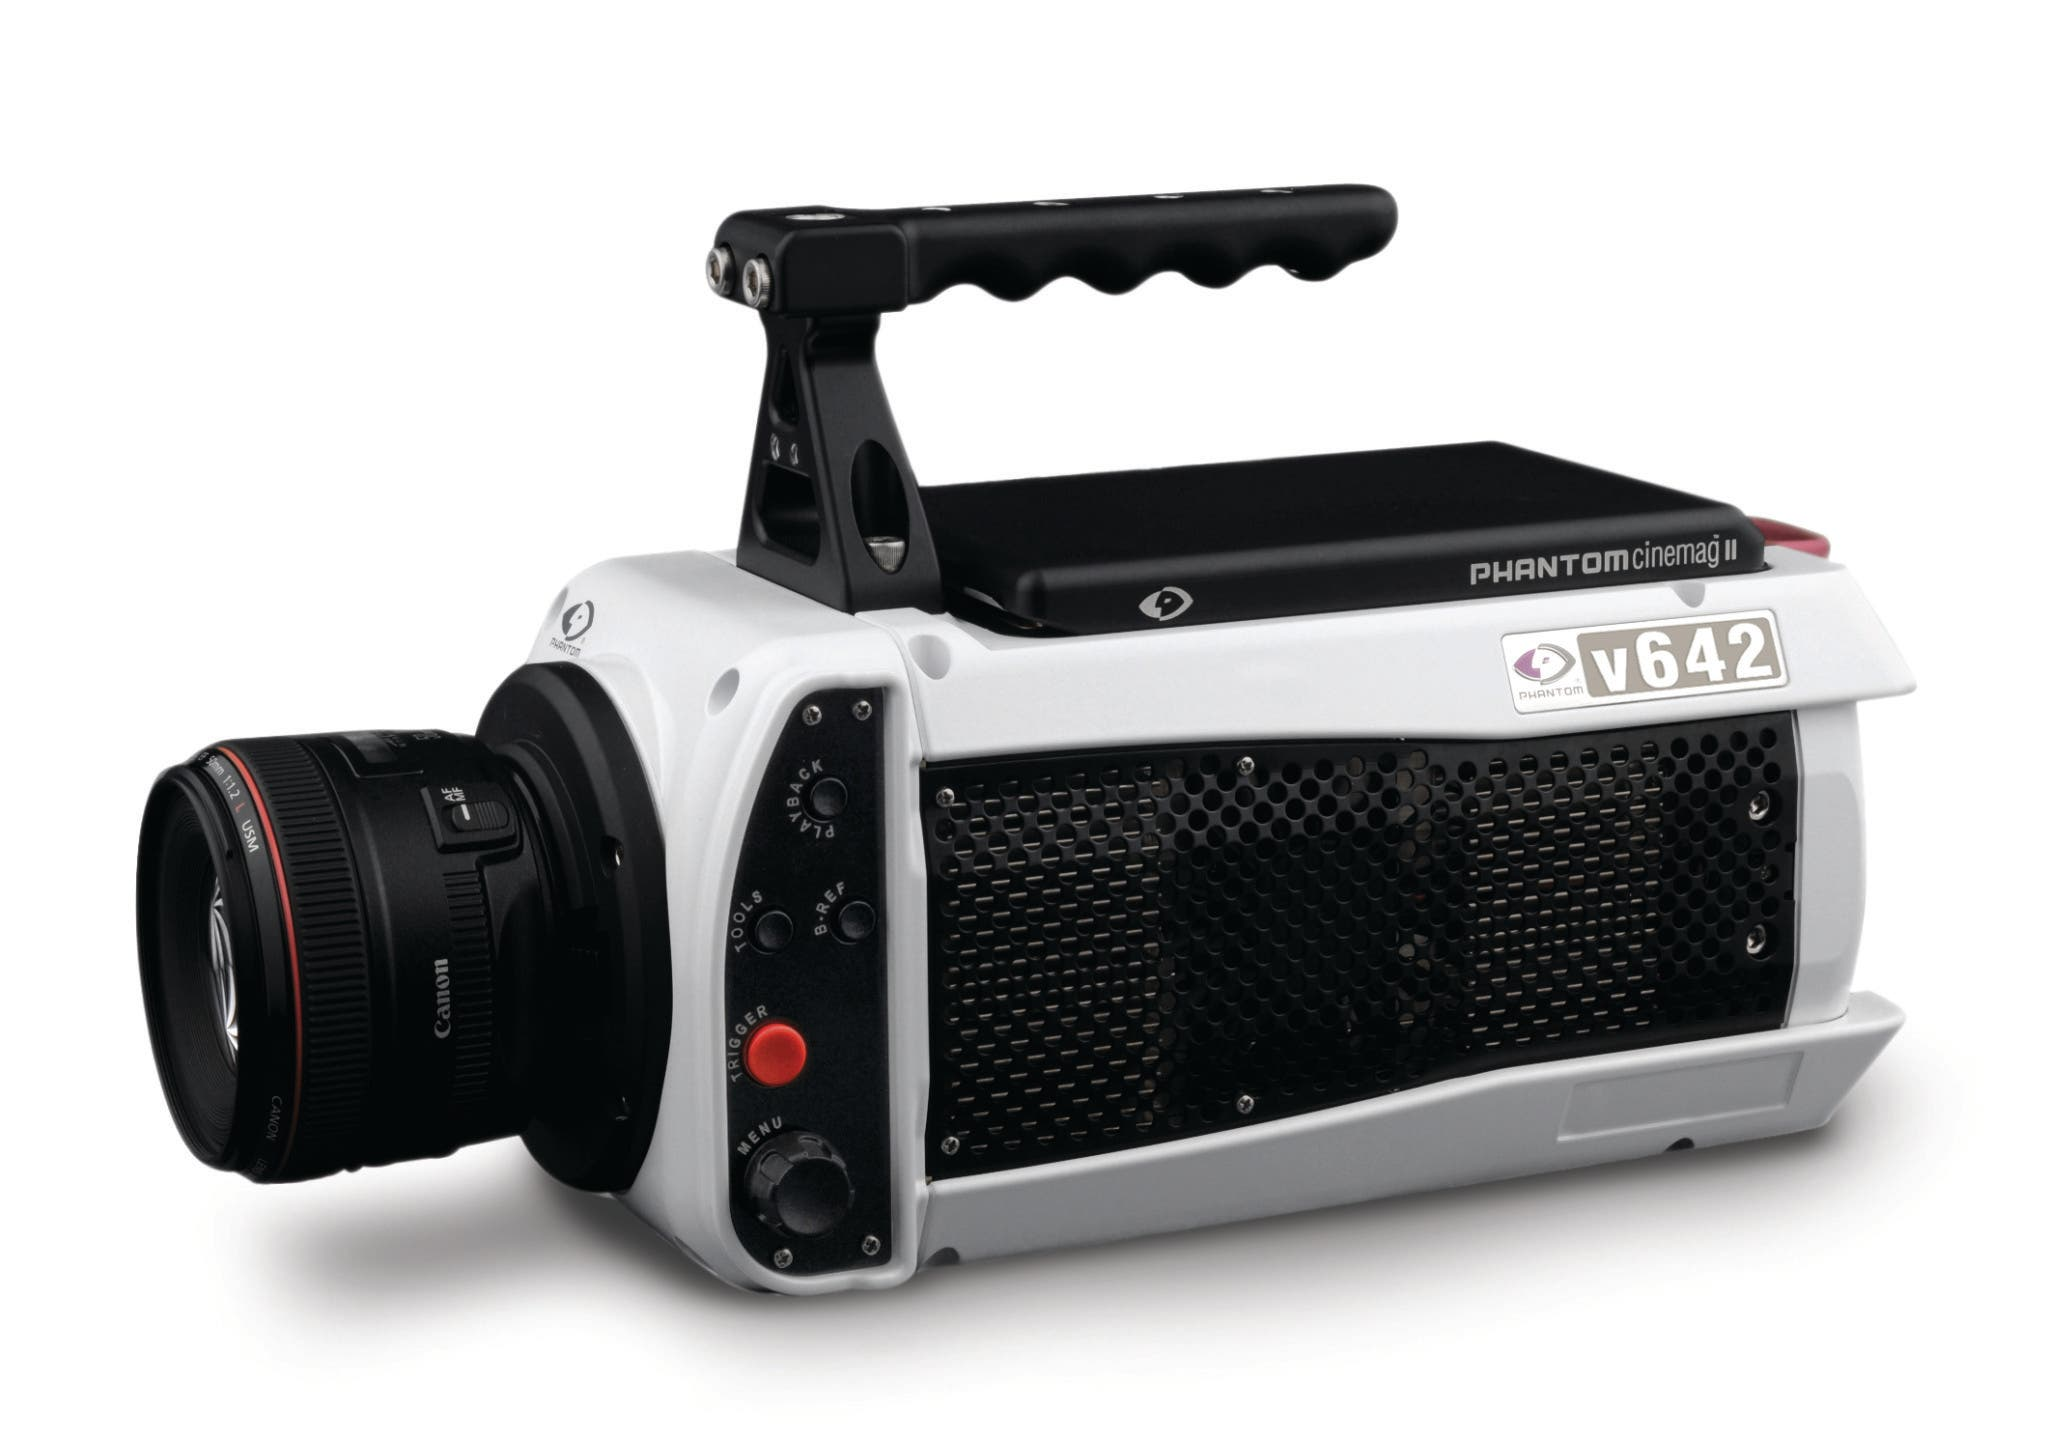 Vision Research Unveils The Phantom v642: The Third Generation of High Speed Cameras